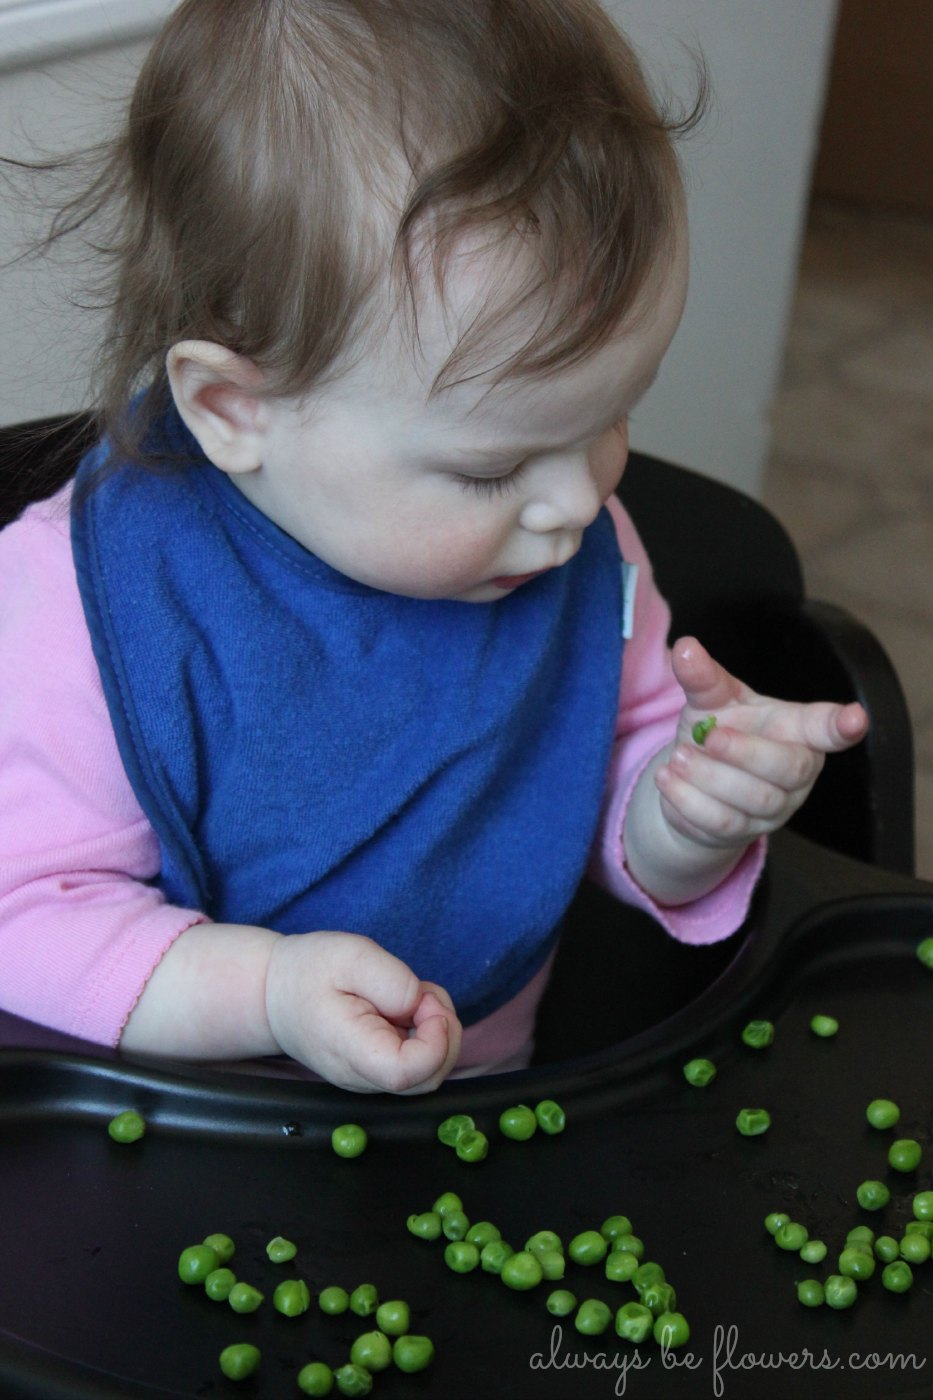 Picking up peas helps develop fine motor skills.